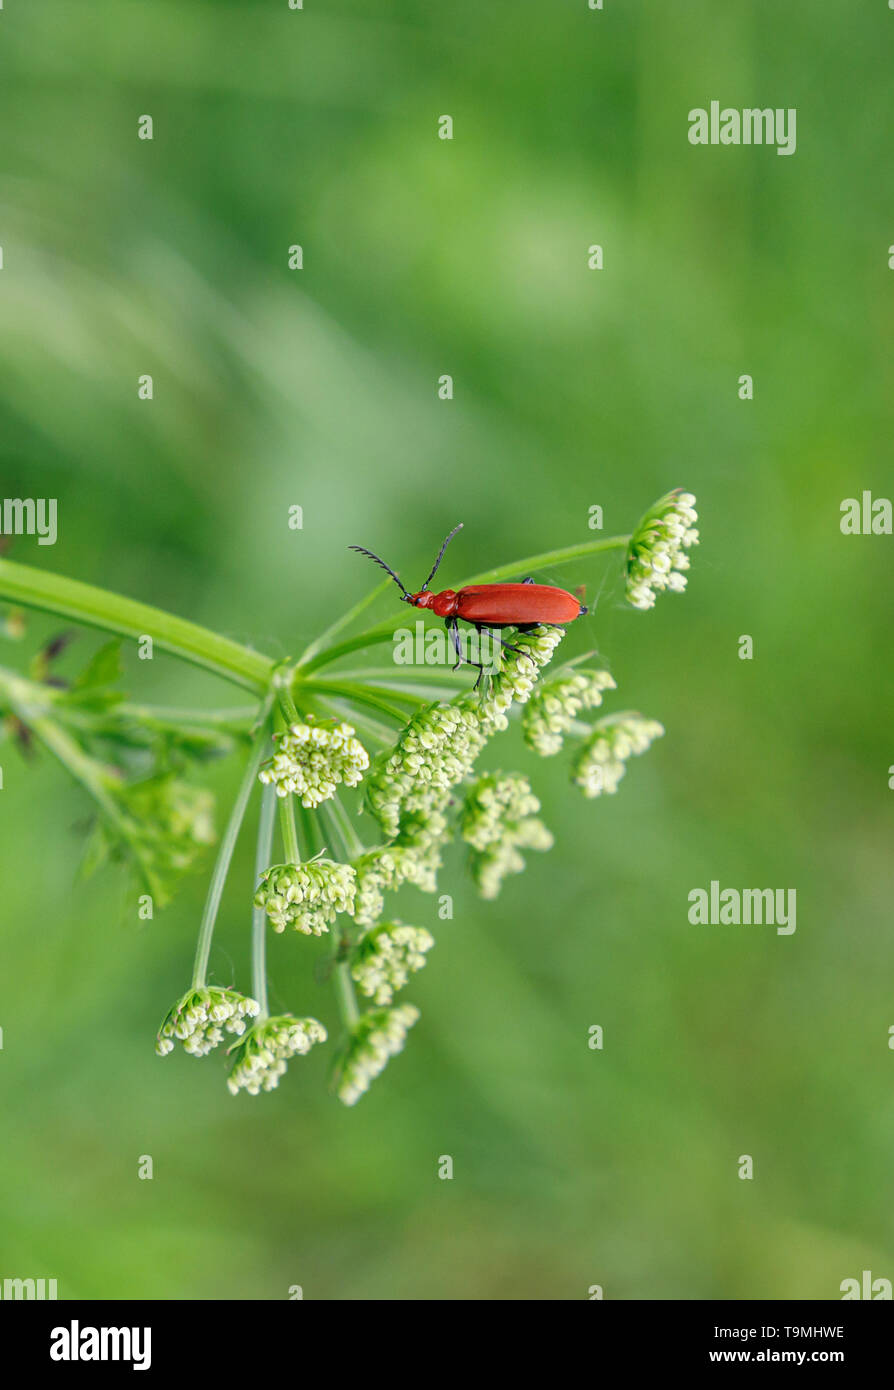 A Cardinal Beetle (Pyrochroa serraticornis), a common small British bug, on cow parsley in Test Valley, Southampton Hampshire, southern England, UK - Stock Image